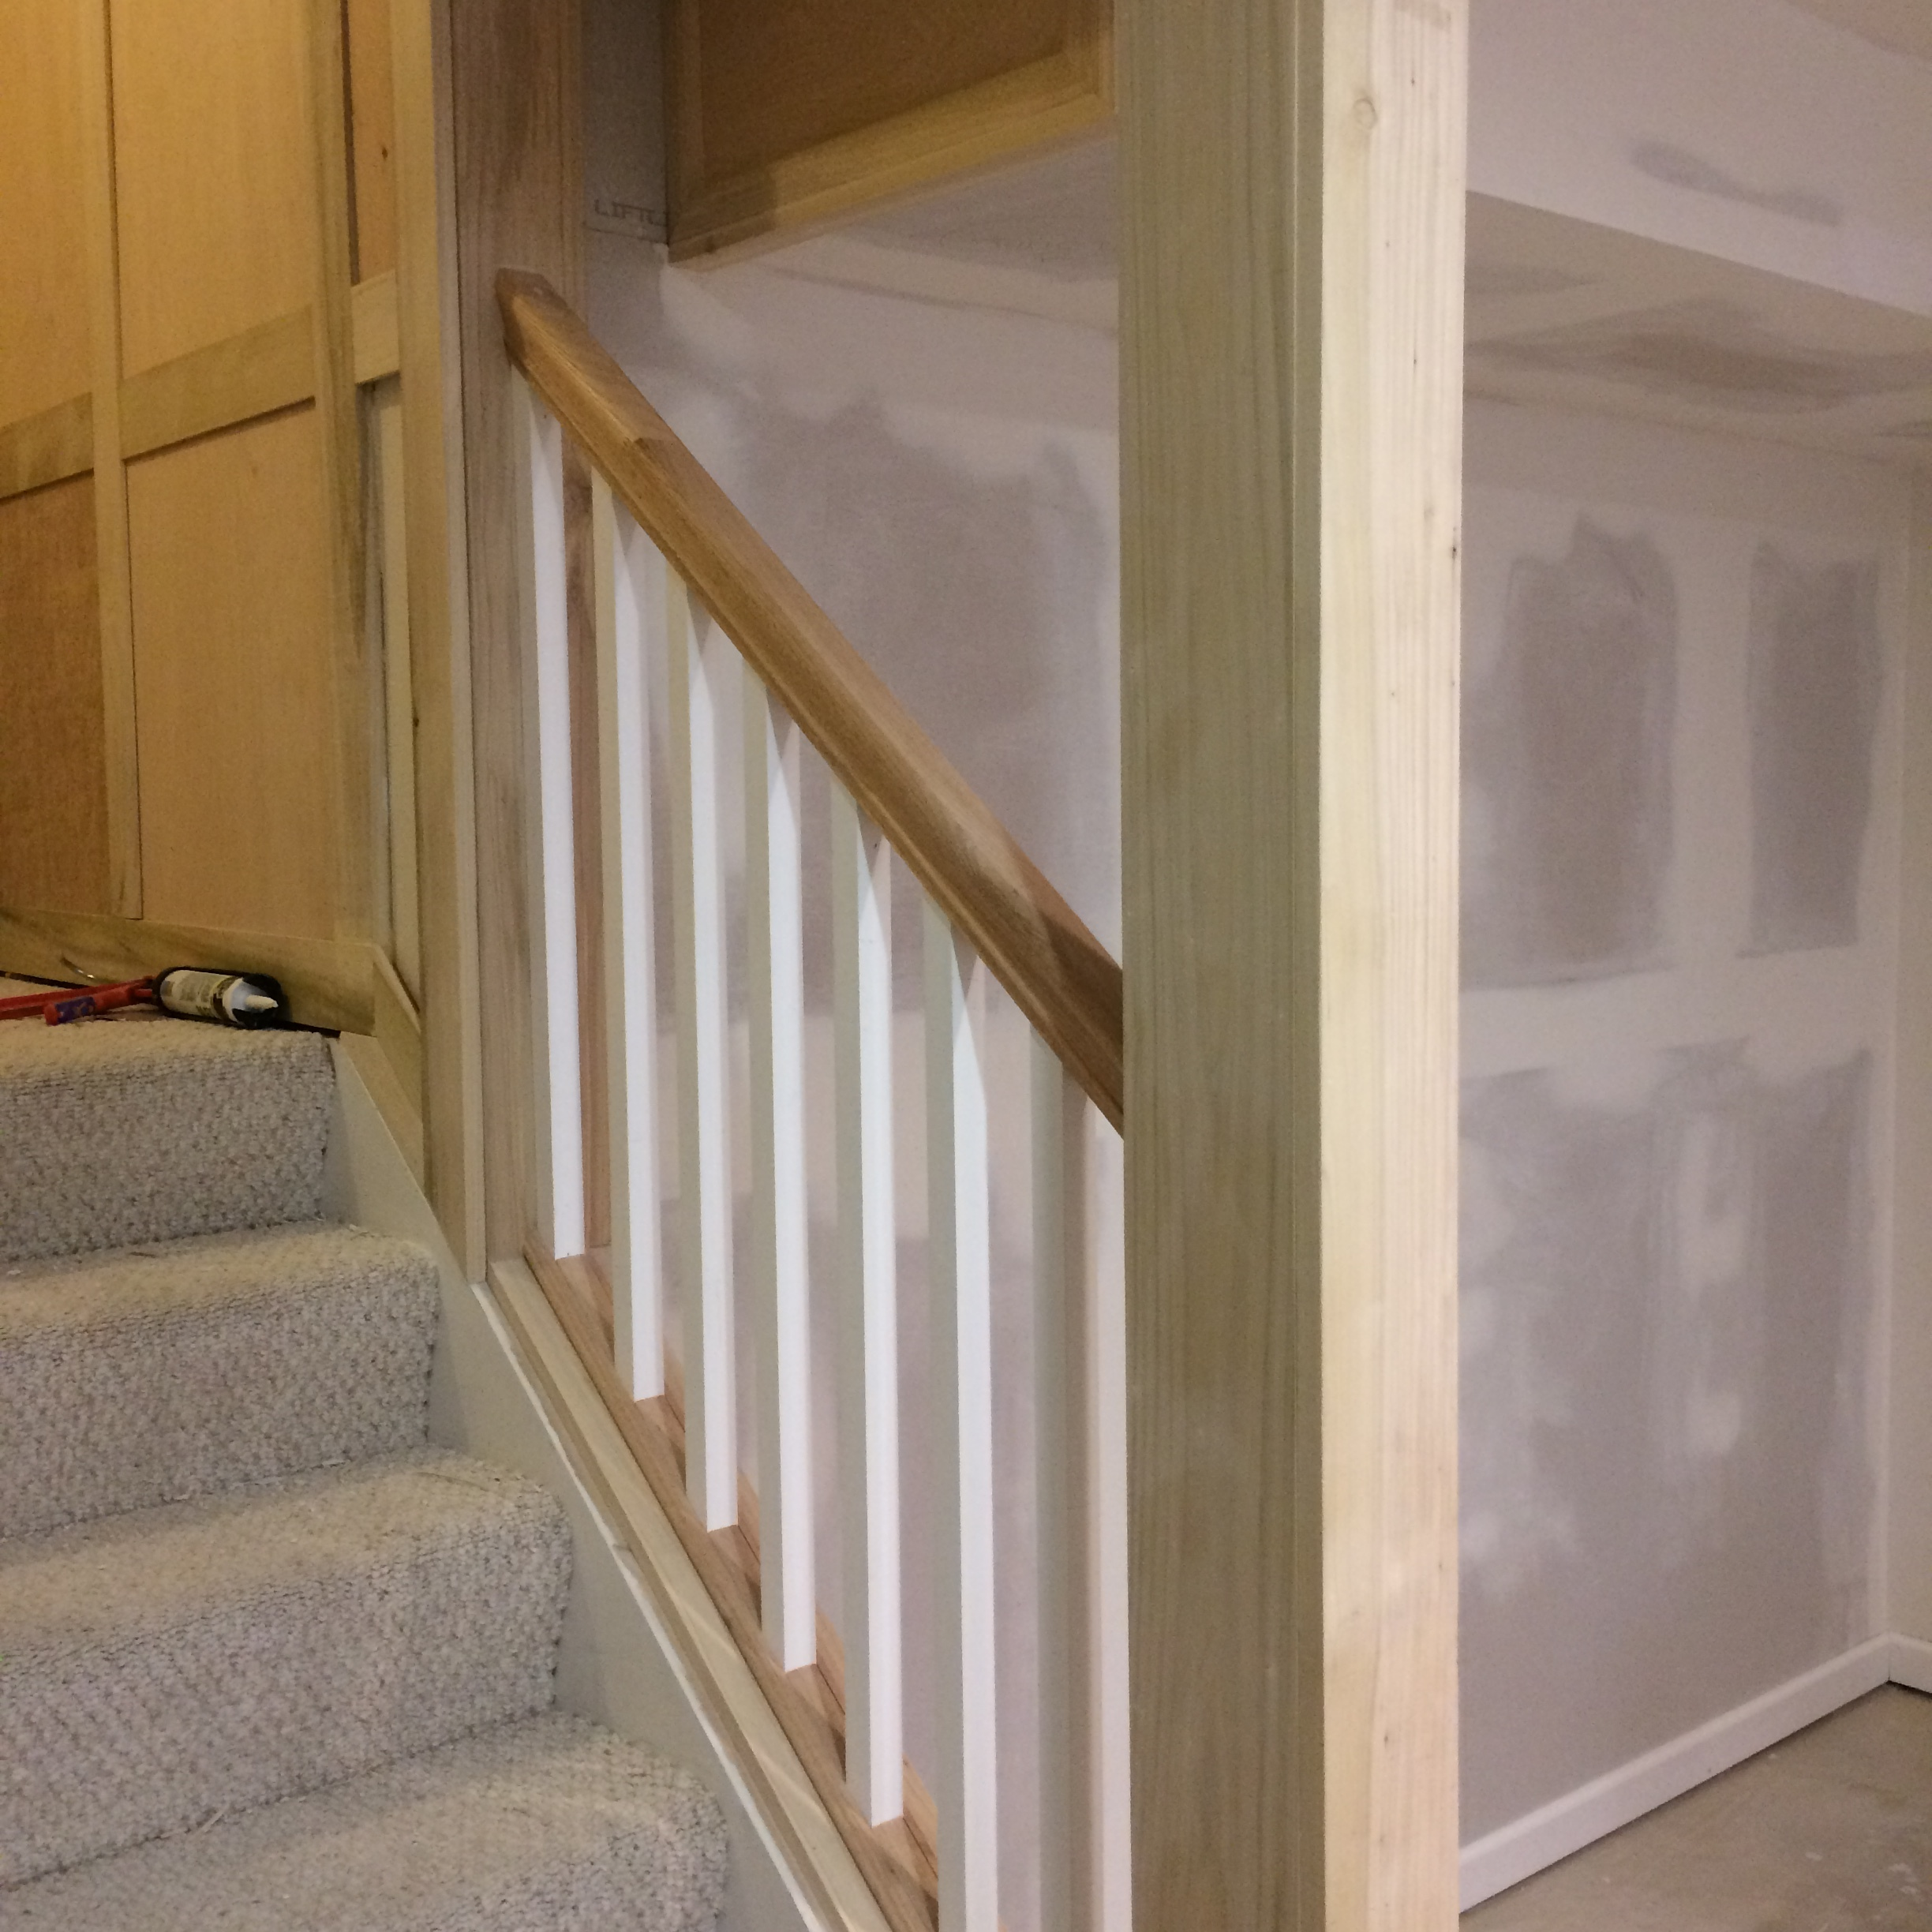 Finish carpentry detail on basement stairway